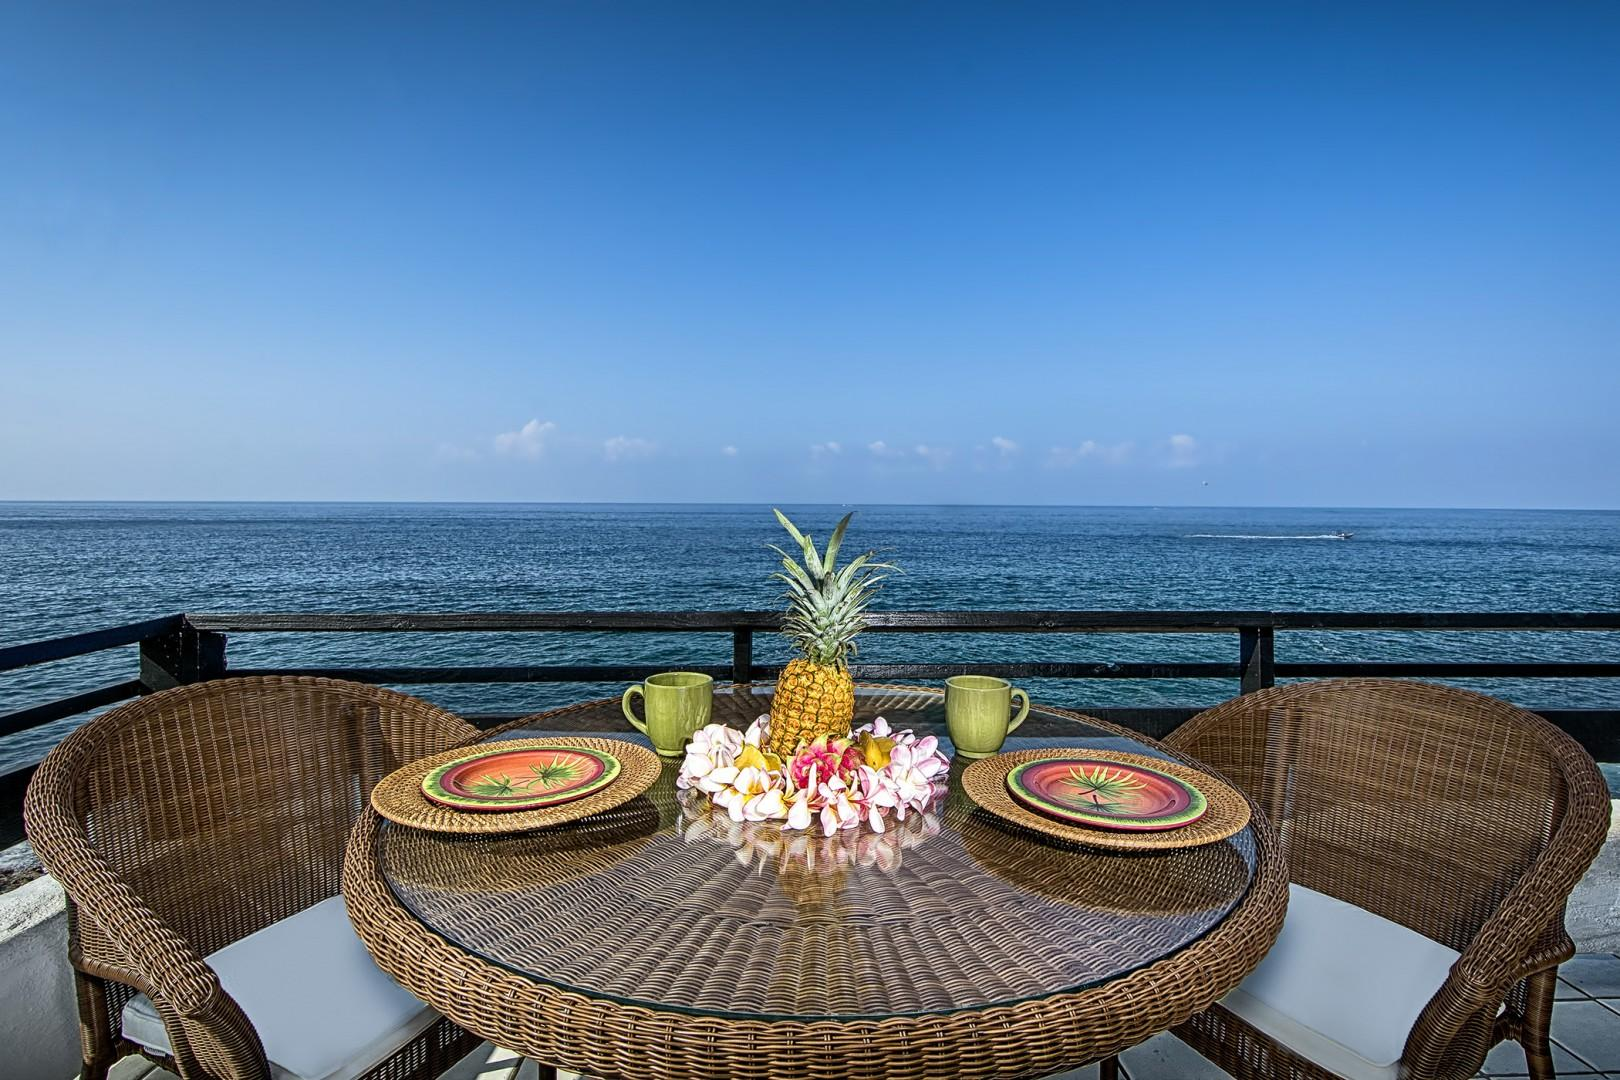 Eat your meals while taking in the sun rays and beautiful views!